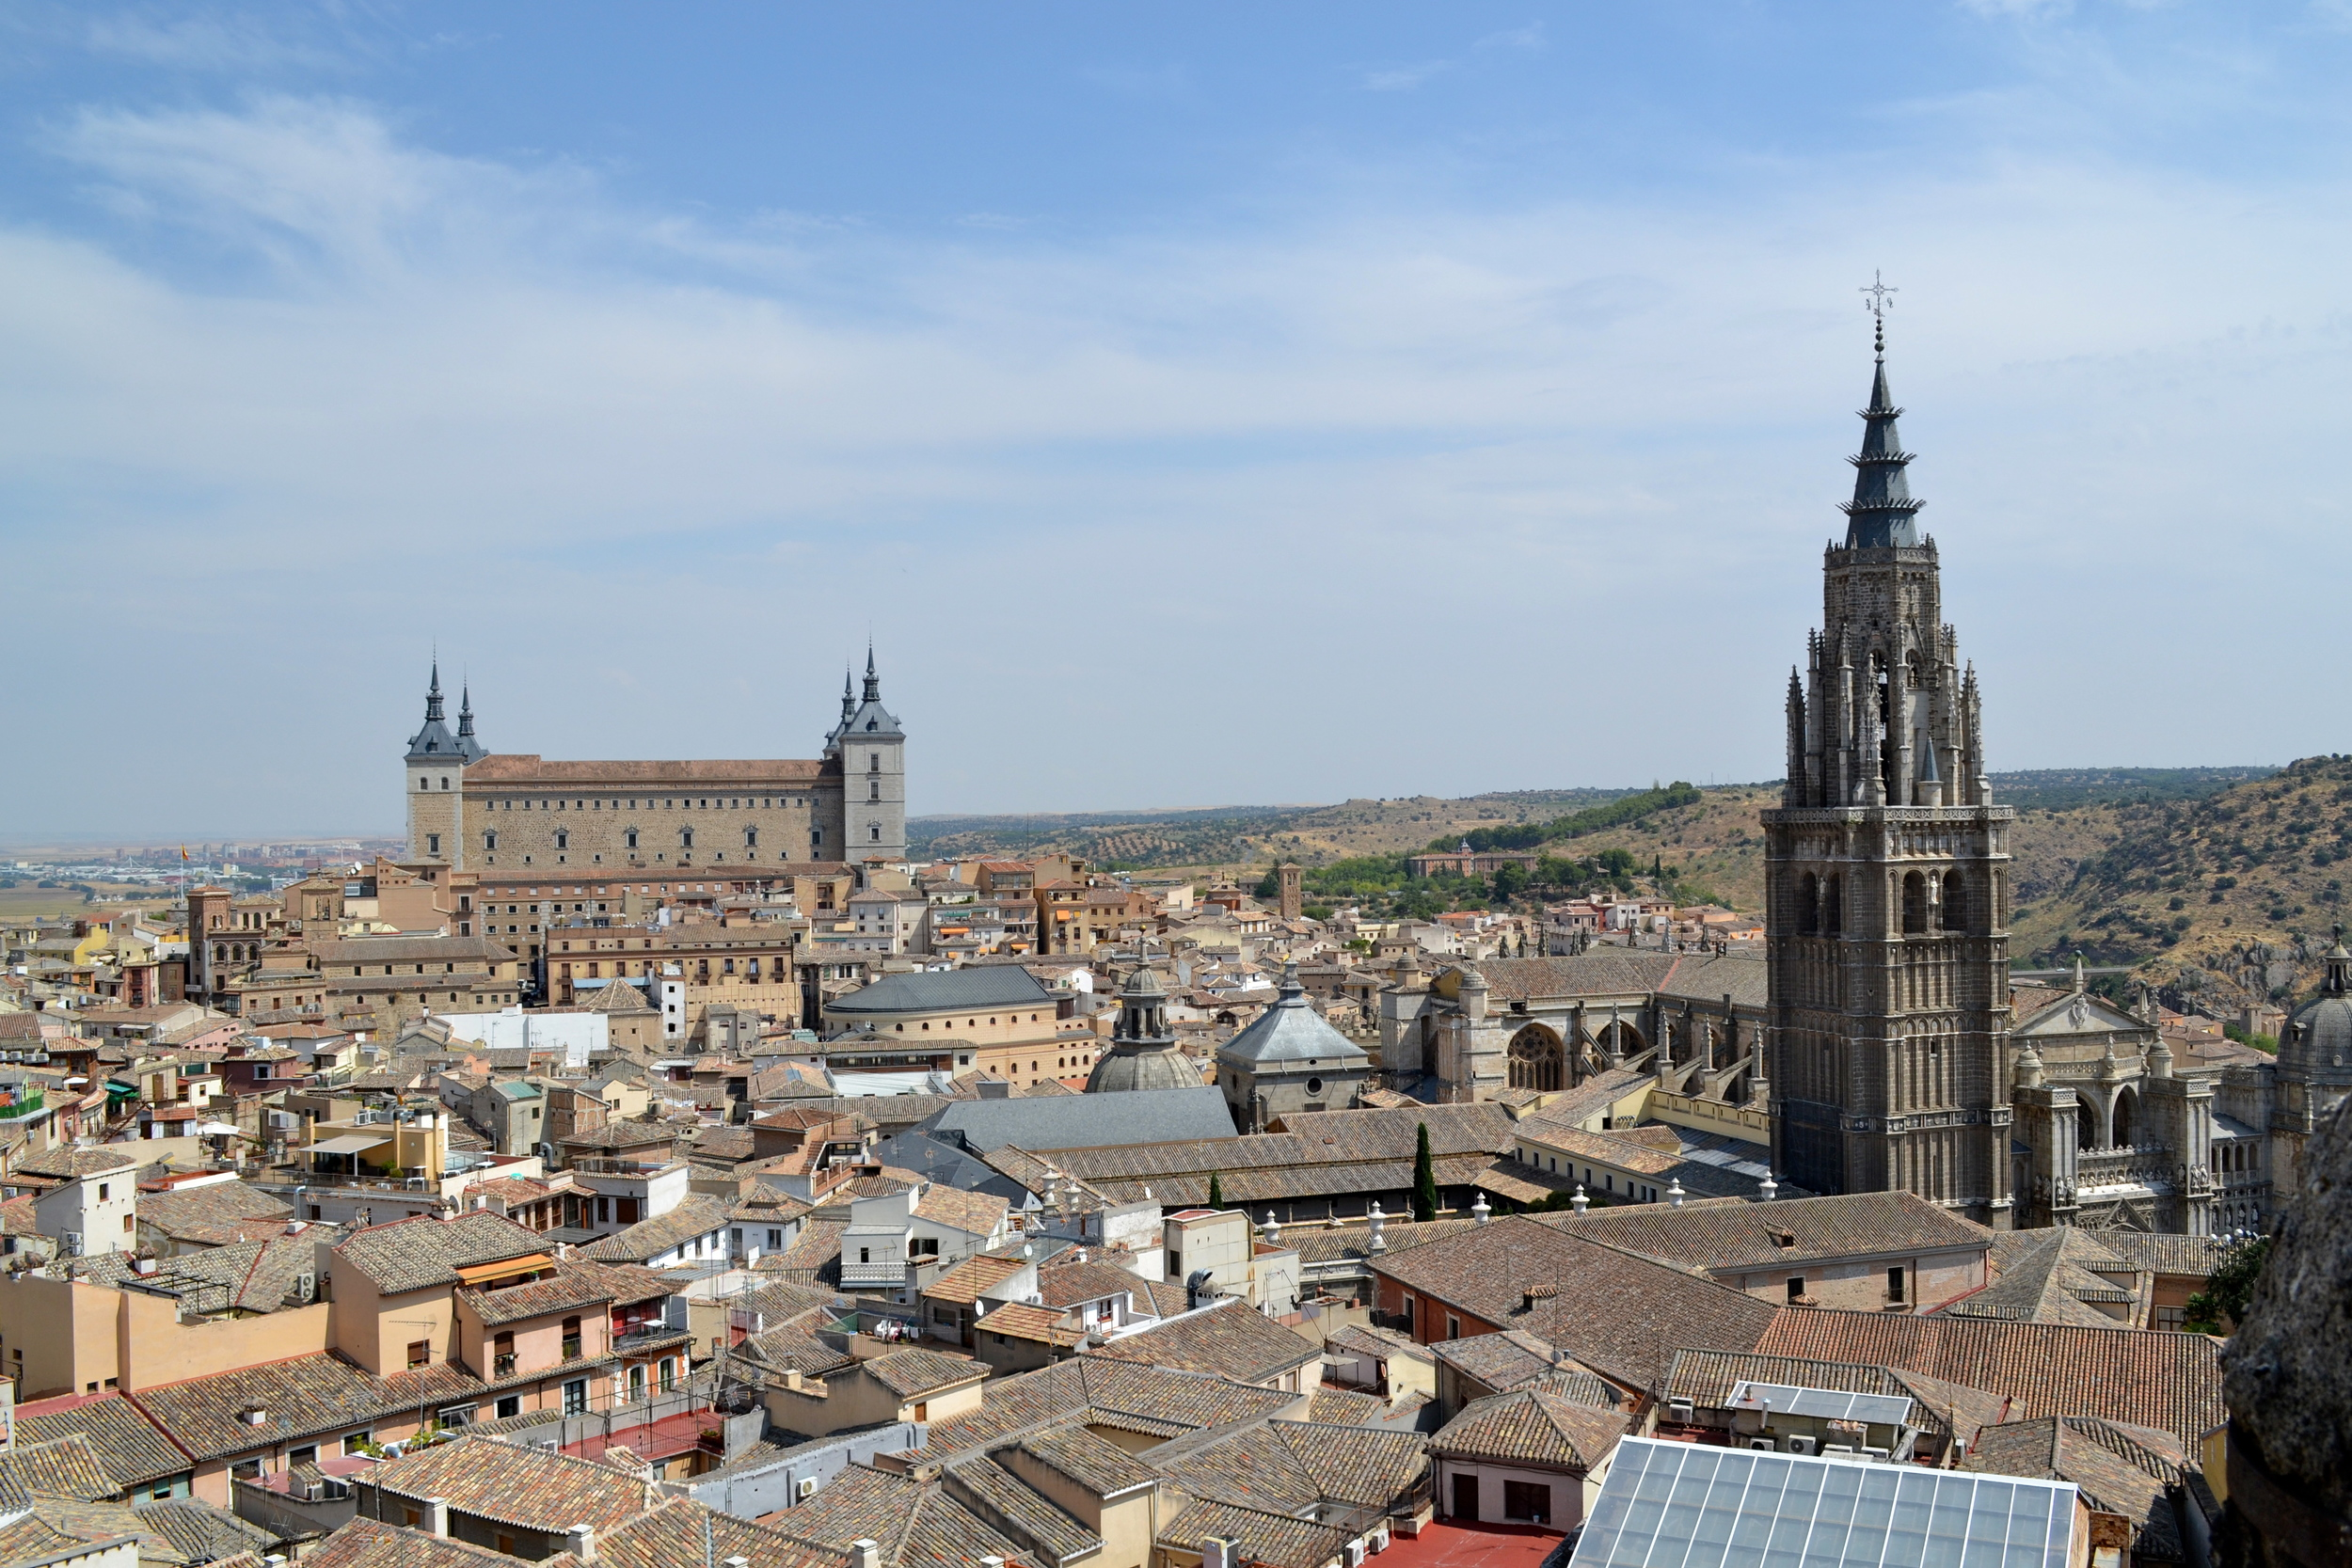 View of Toledo from the top of Iglesia de los Jesuitos.